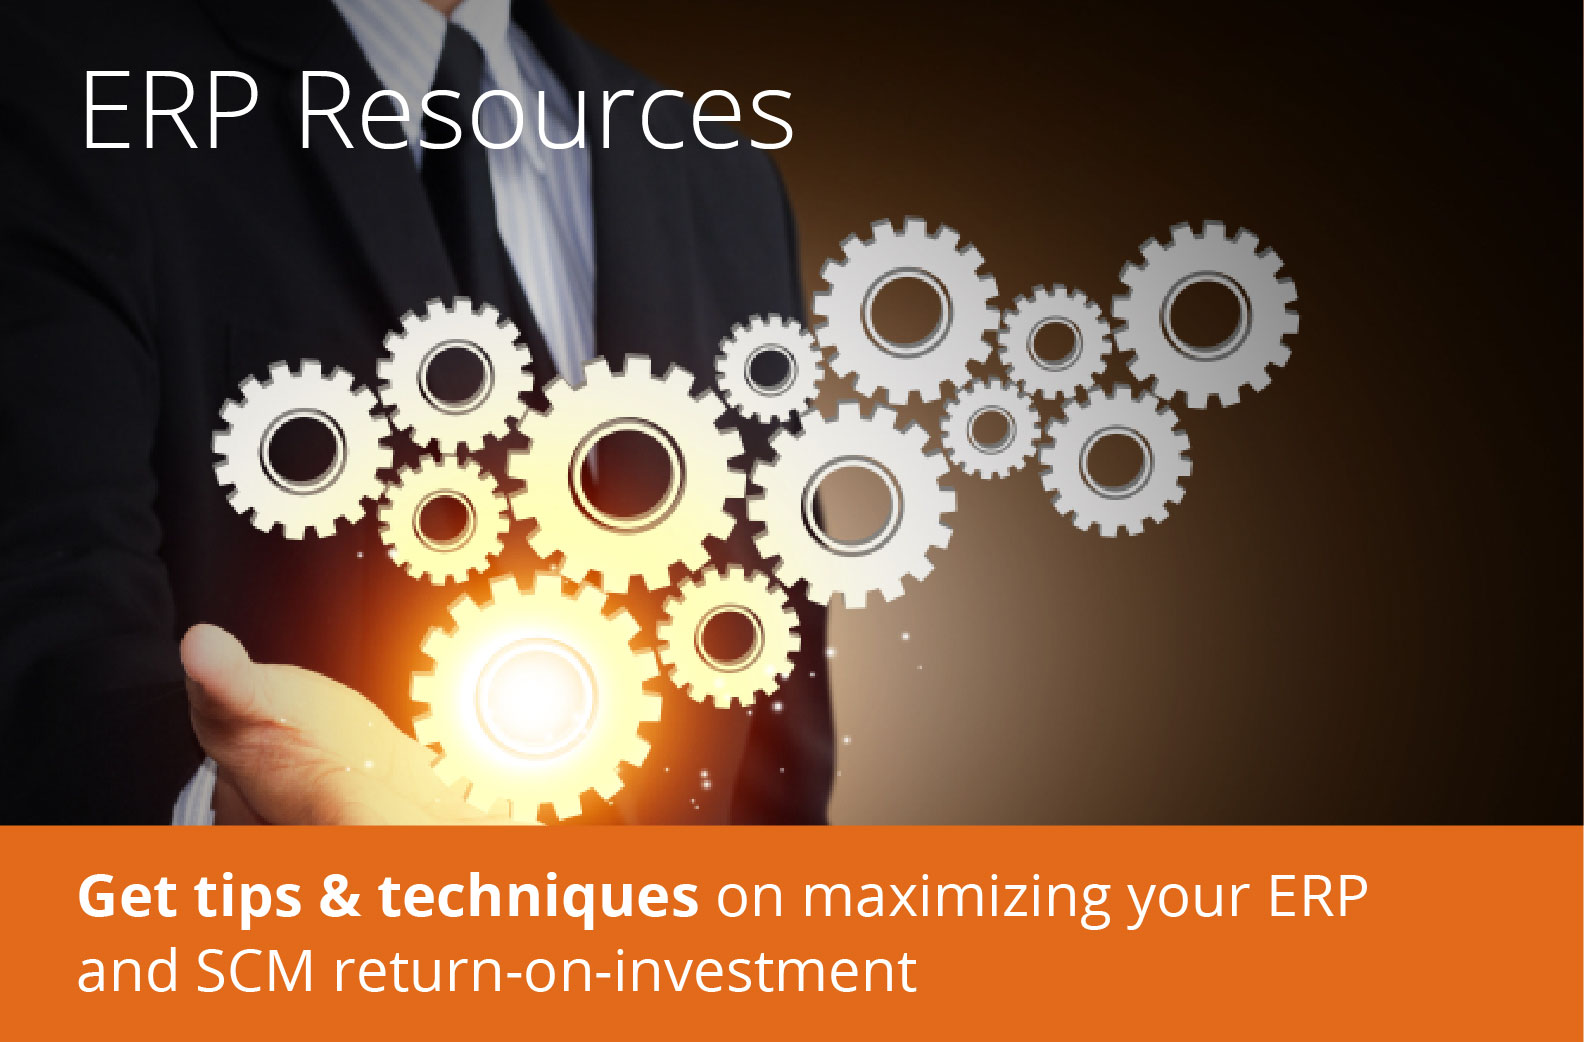 erp-resources